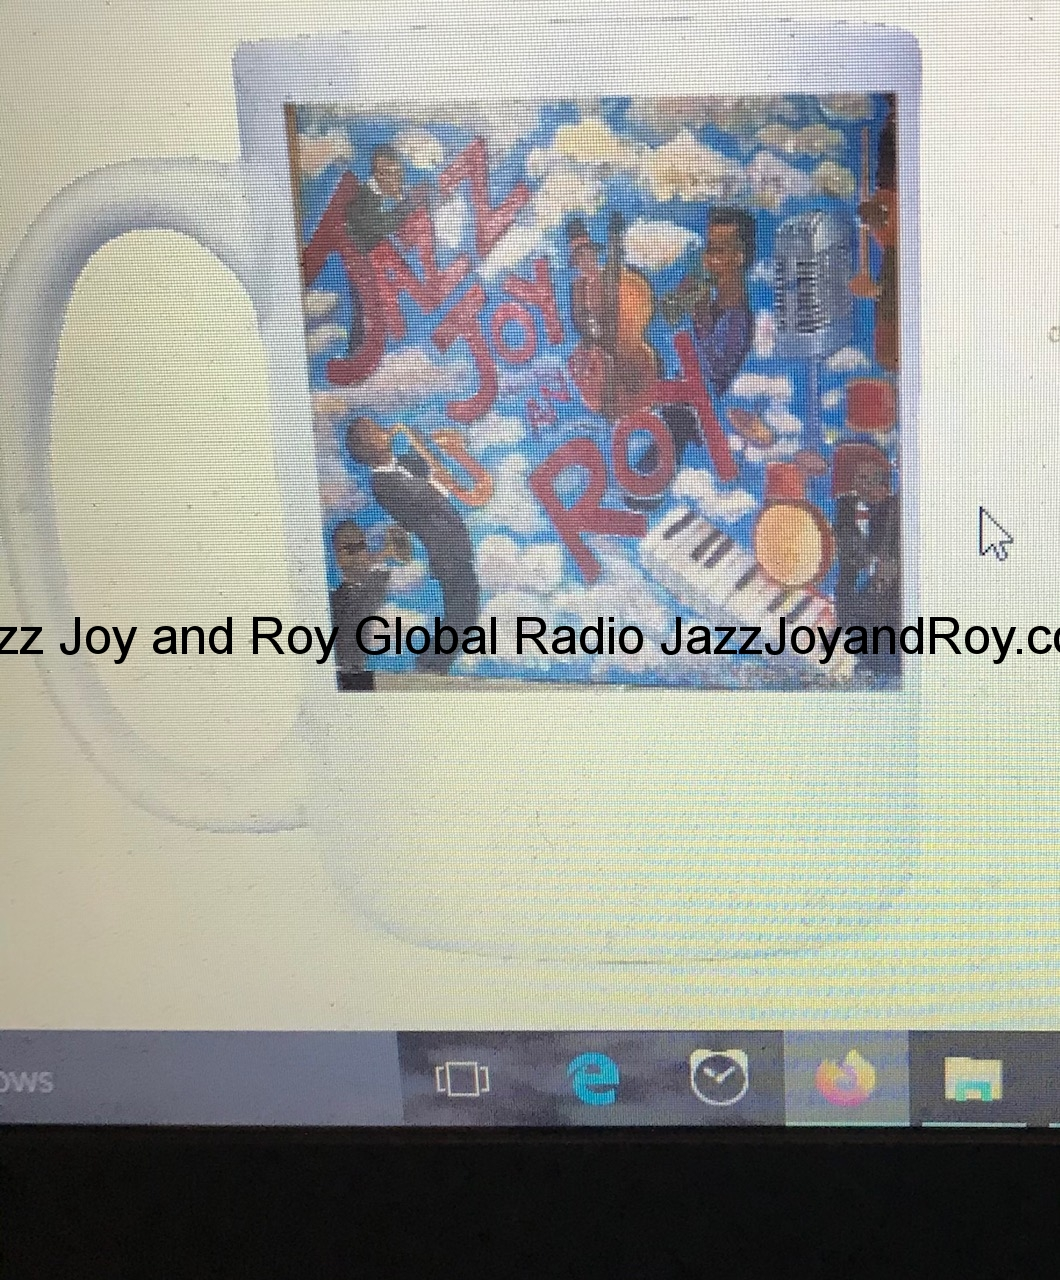 'Jazz Joy and Roy' Coffee Mug Featuring The Painting of the Same Name by Kathy, now only $29.99